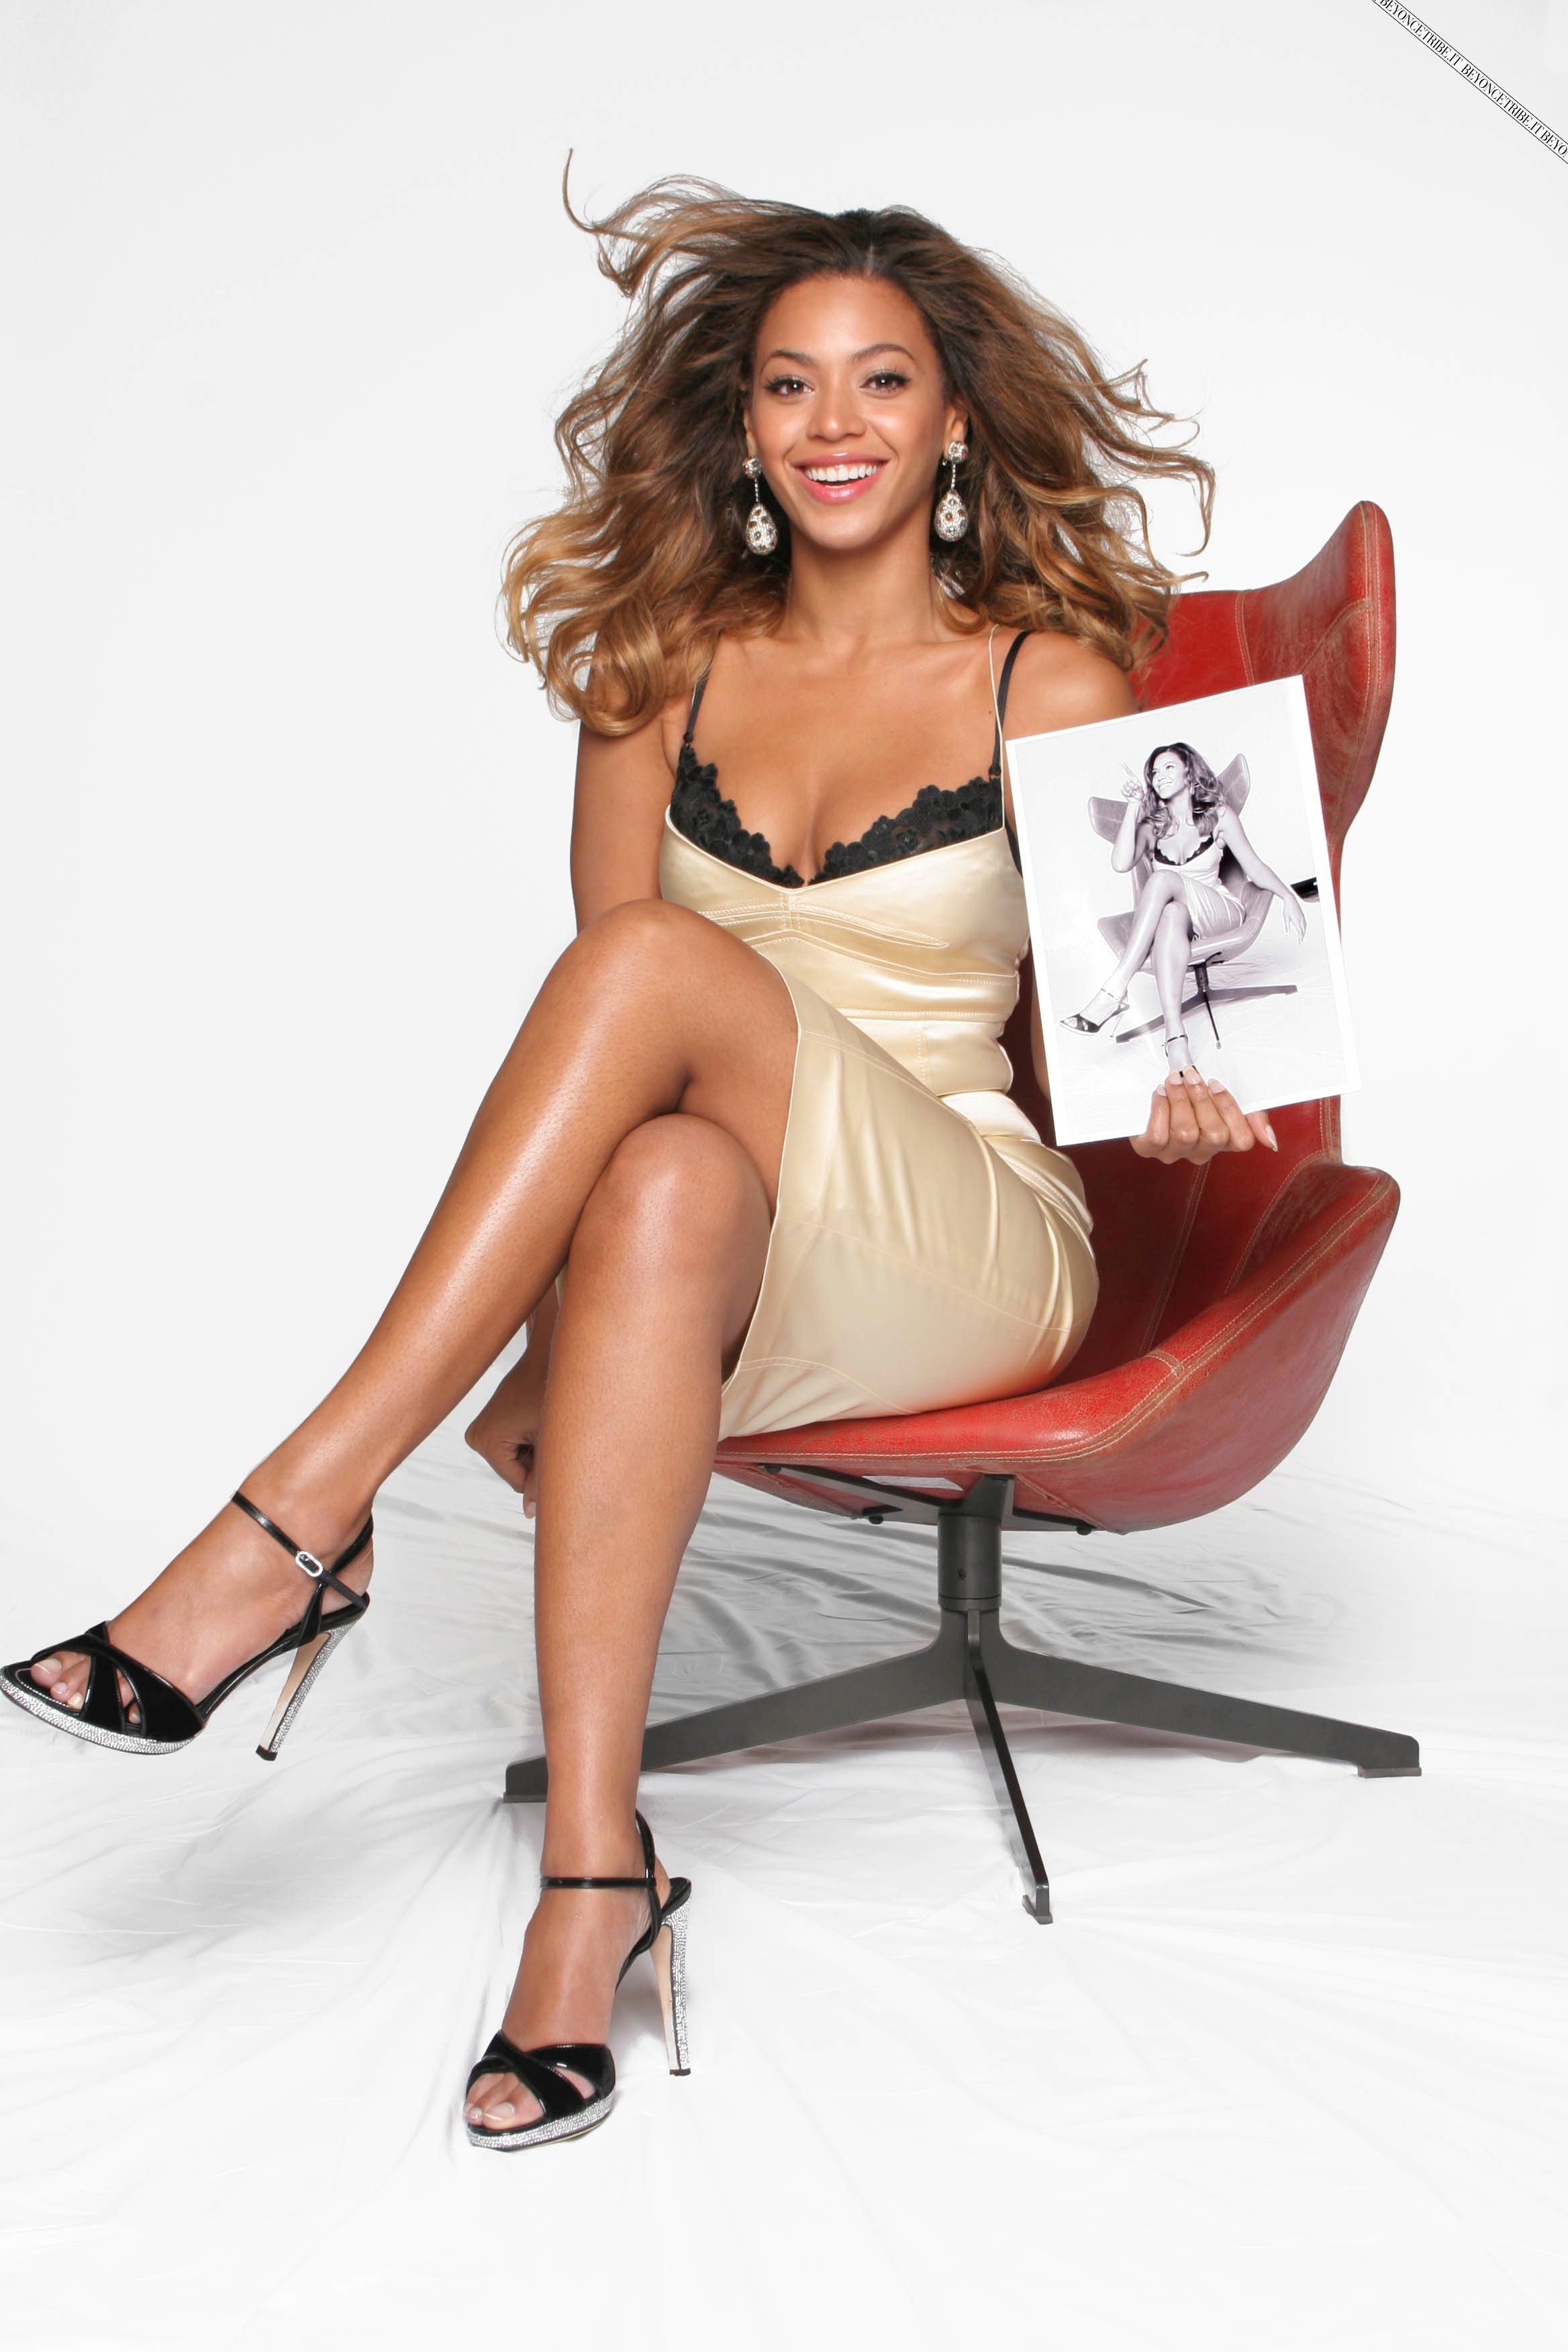 36373_Beyonce_Knowles_Jason_Fraser_Shoot_01_122_100lo